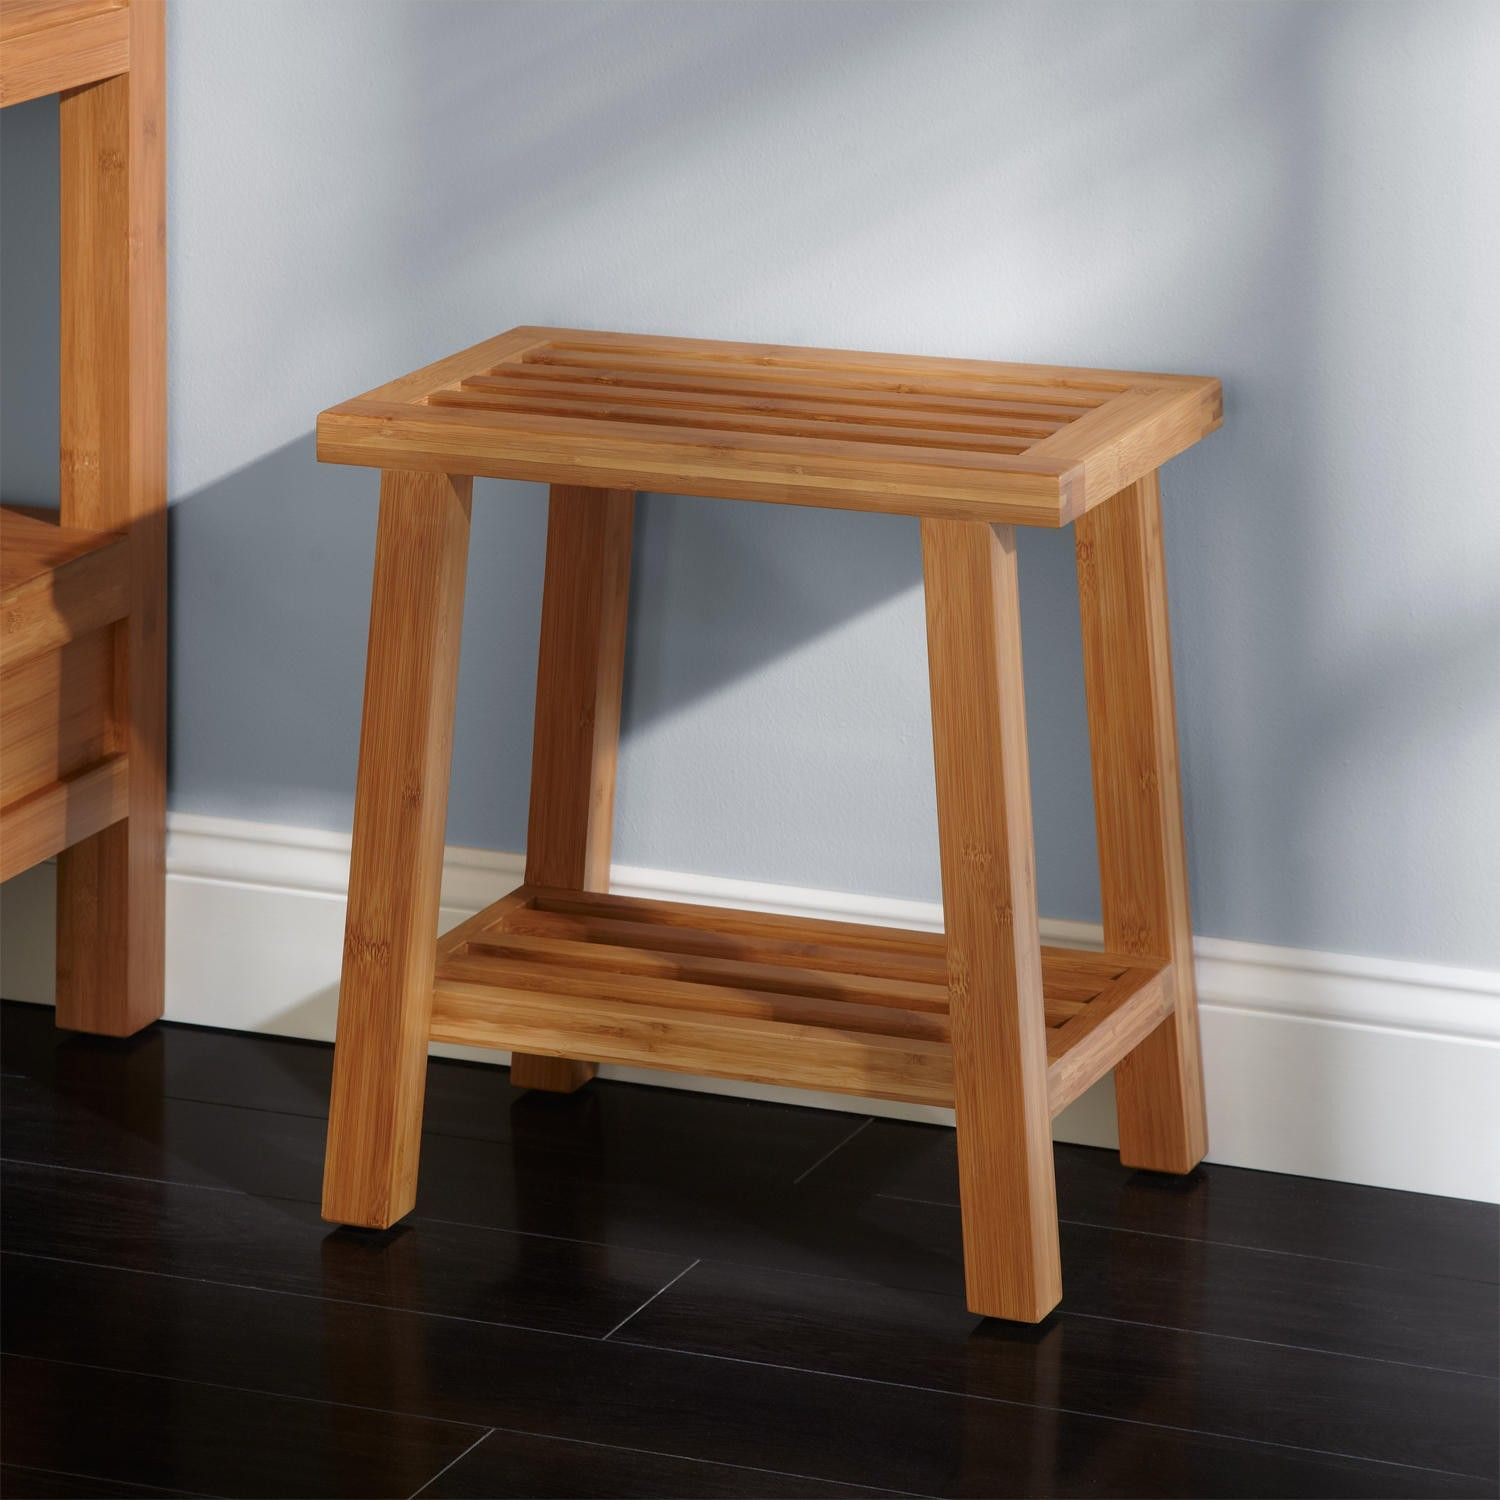 Amazing Freestanding Bamboo Slotted Bathroom Stool